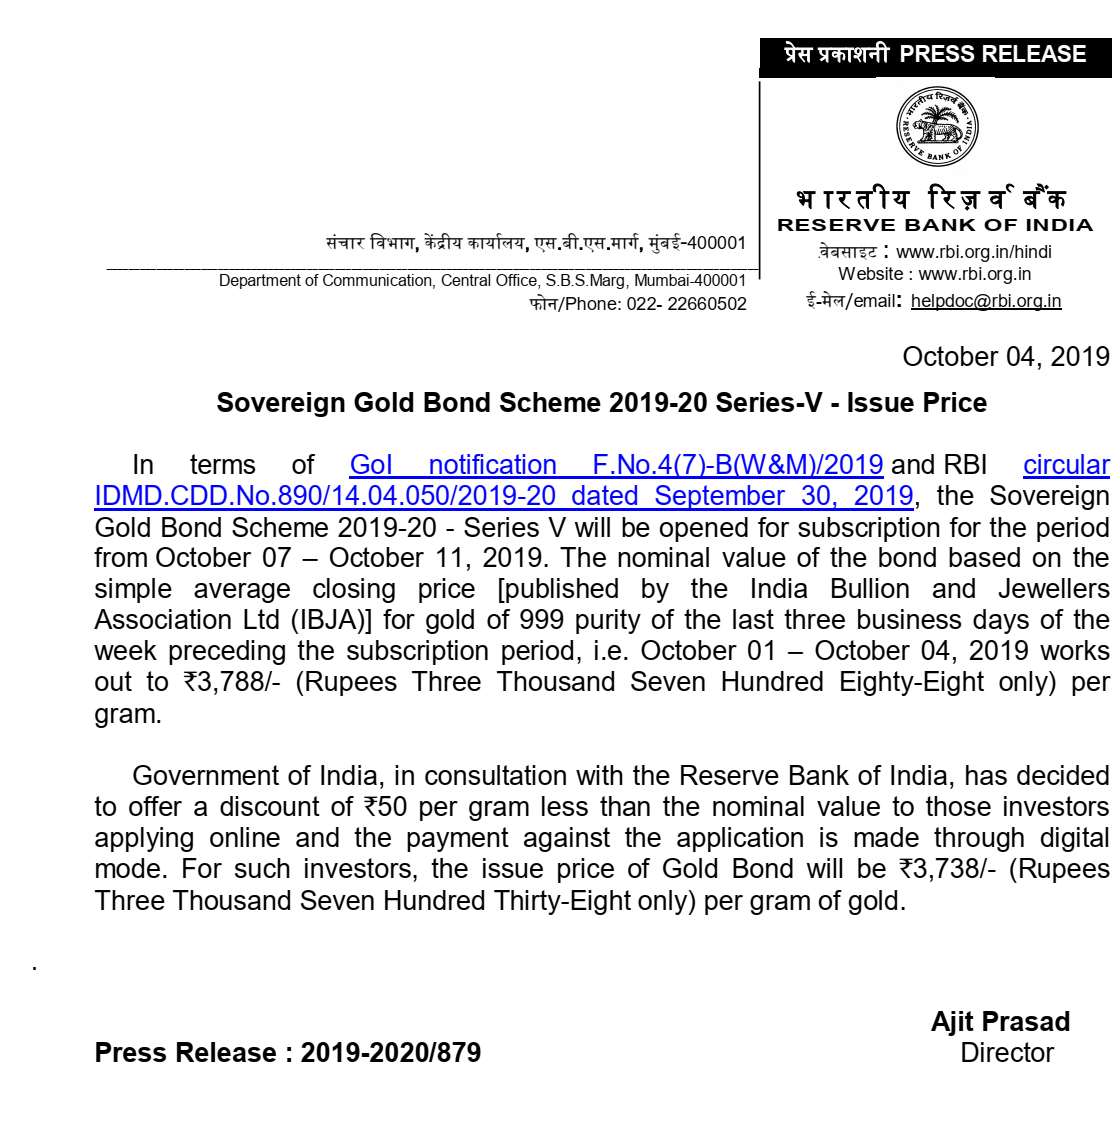 image search result for Sovereign Gold bond scheme